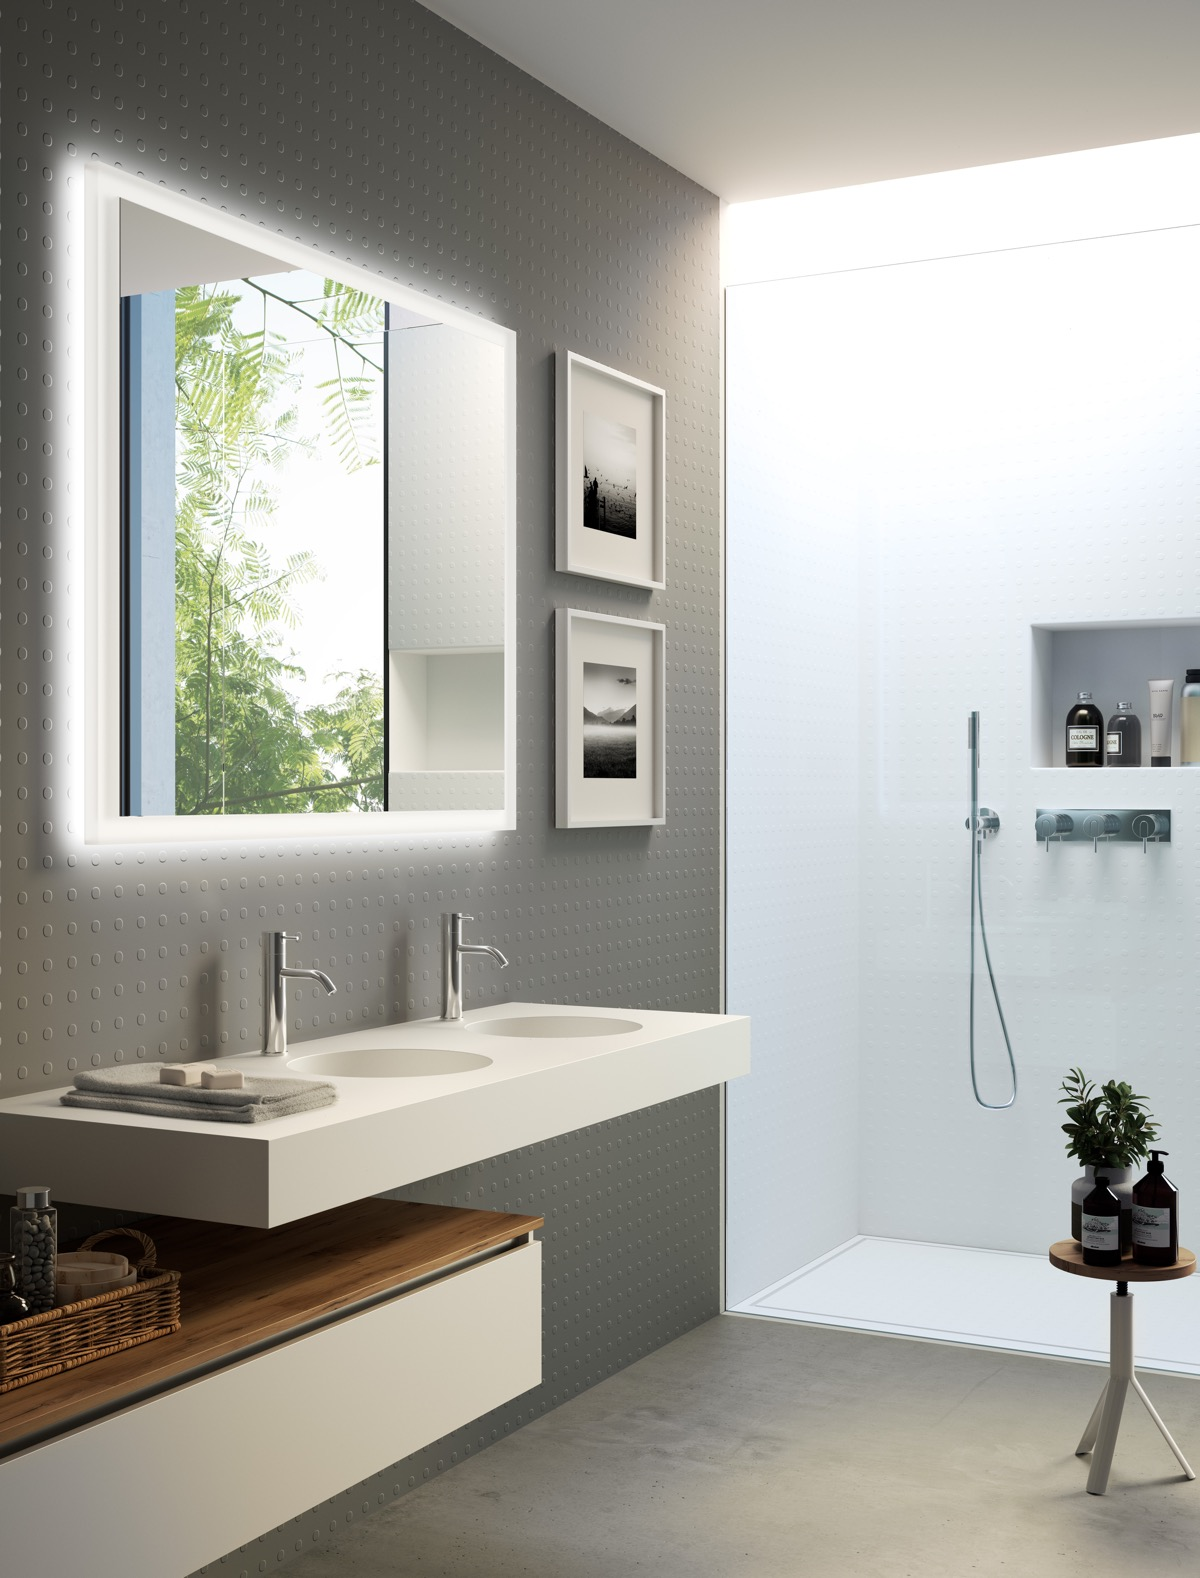 36 modern grey white bathrooms that relax mind body soul - White bathroom ideas photo gallery ...